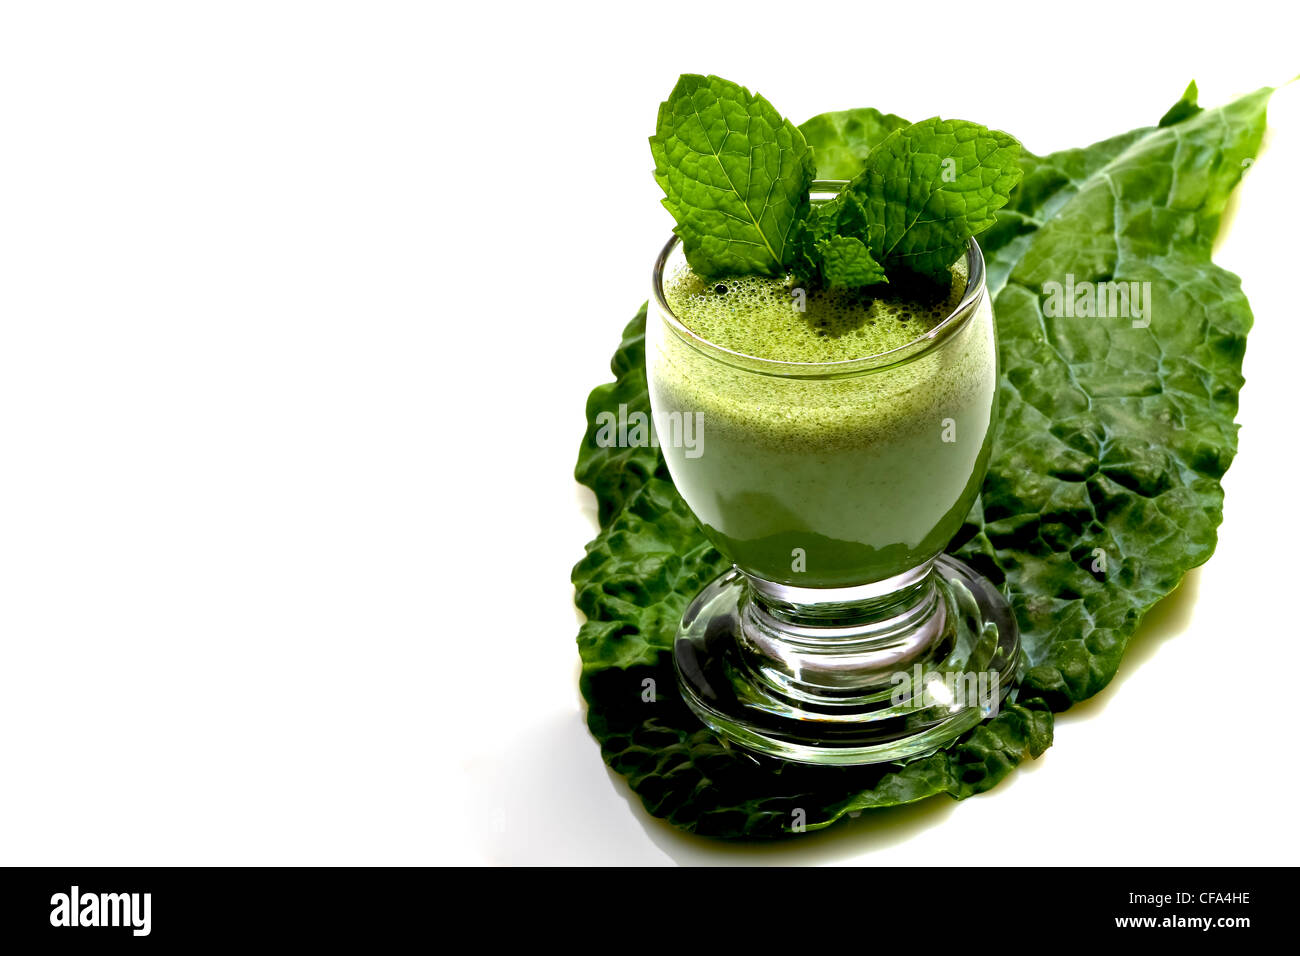 Glass of puree'd leafy vegtables with fiber - Stock Image